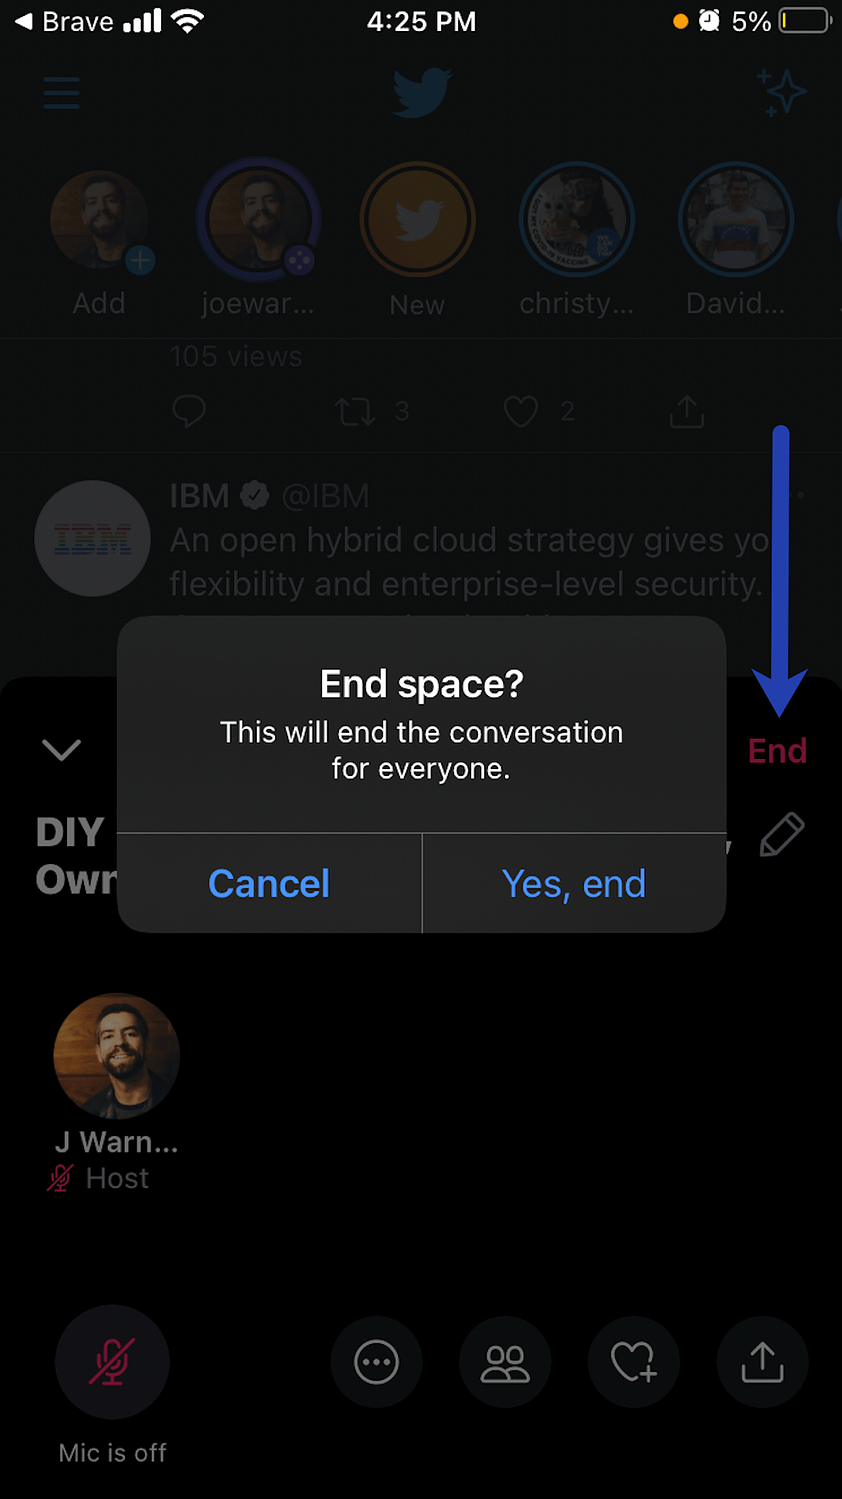 end space - Twitter Spaces.